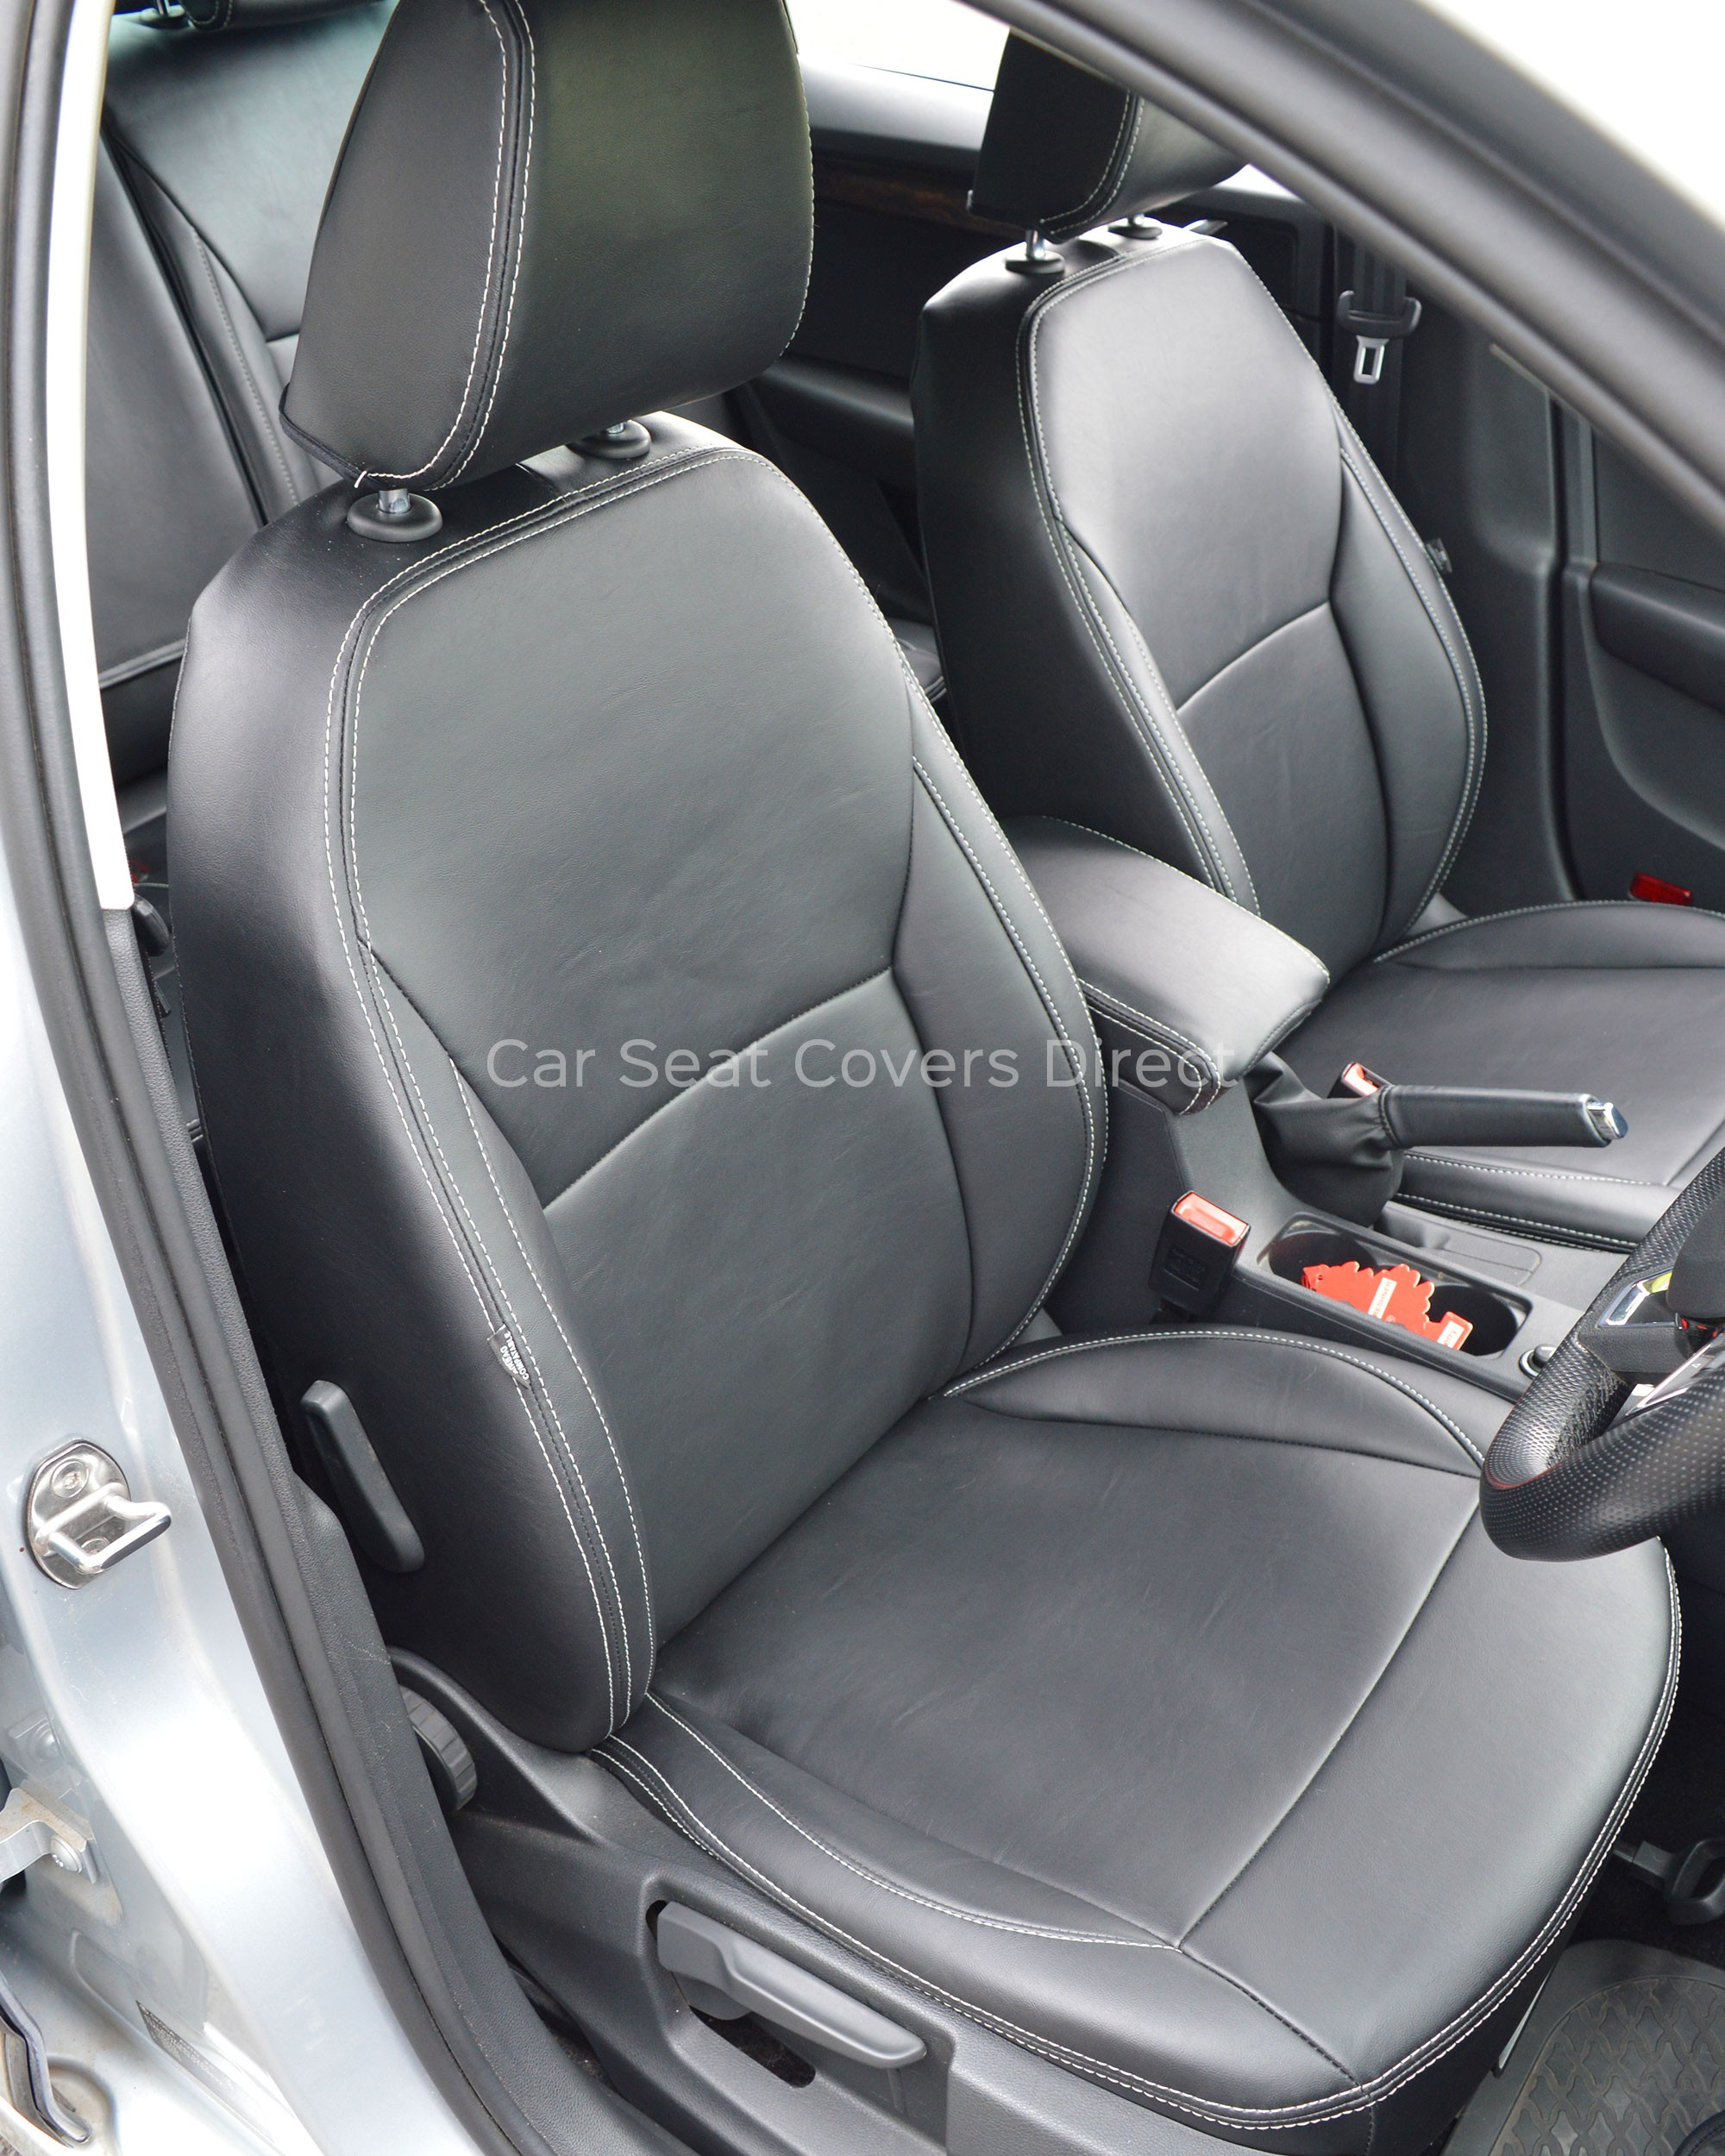 Skoda Octavia Tailored Car Seat Covers